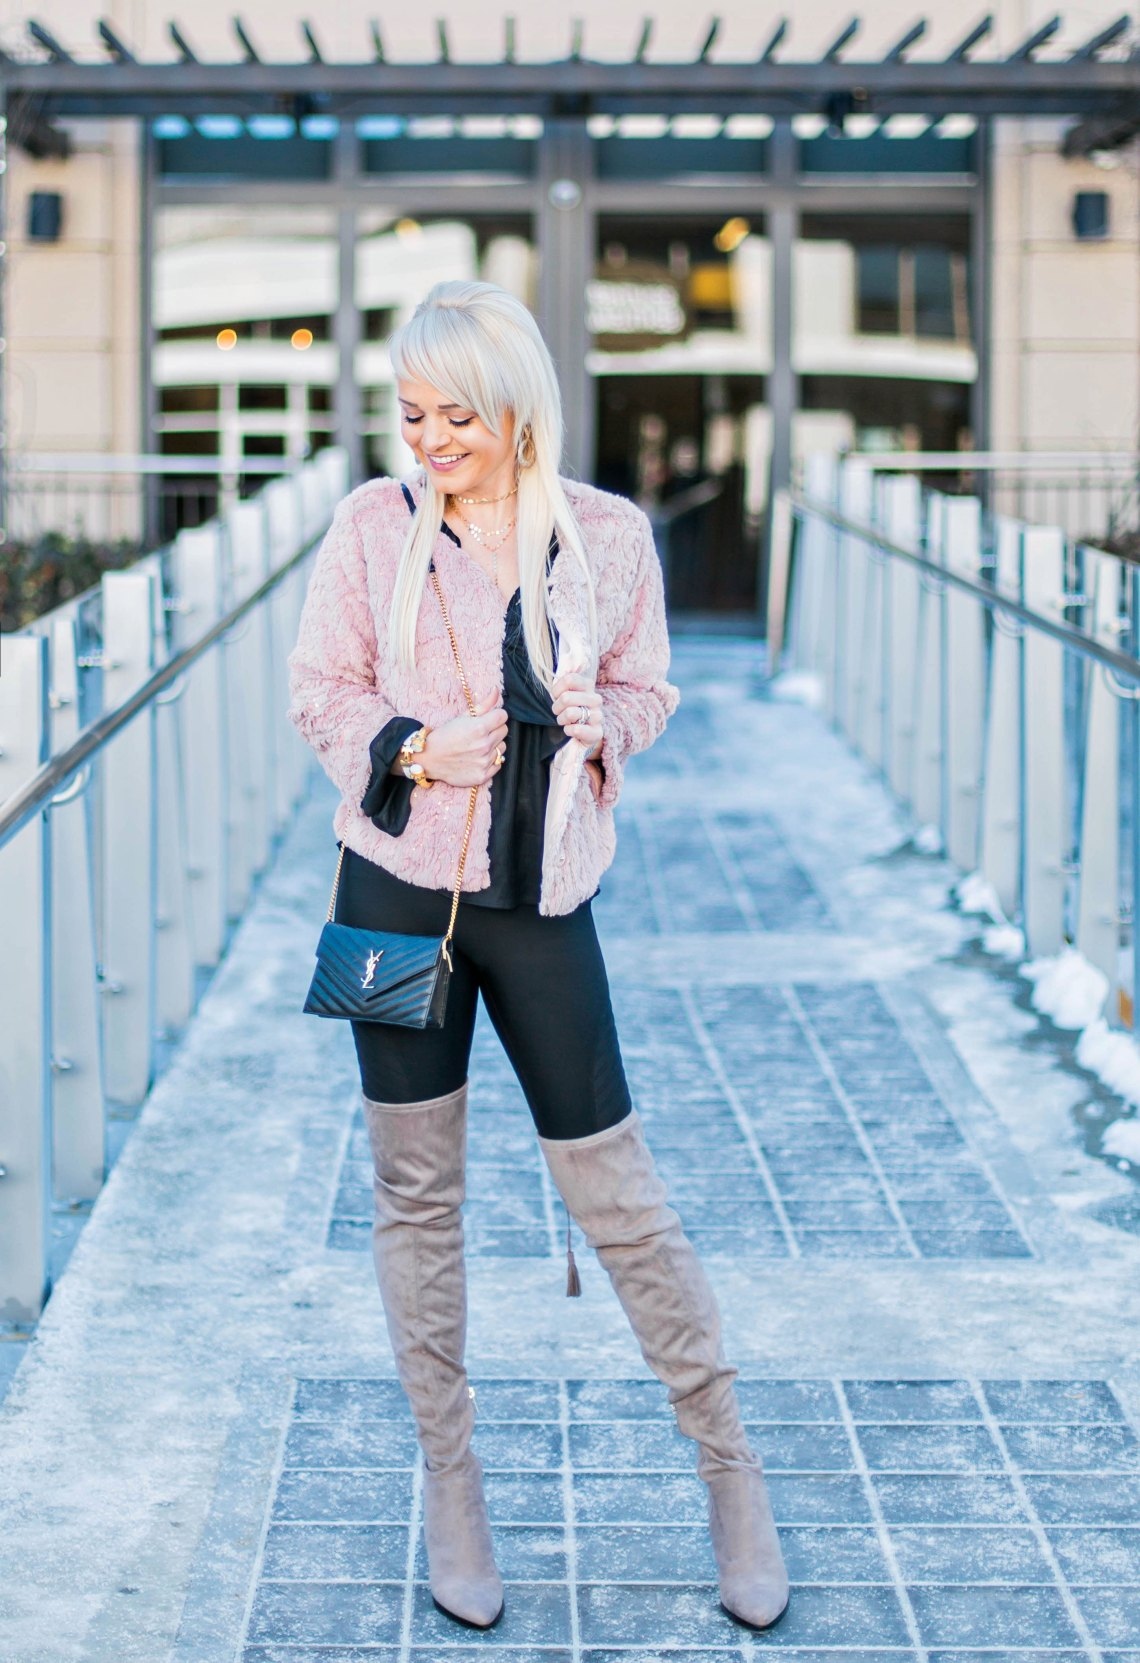 one-shoulder-top-for-27-nordstrom-ruffles-winter-style-boots-urban-blonde-atlanta-fashion-blogger